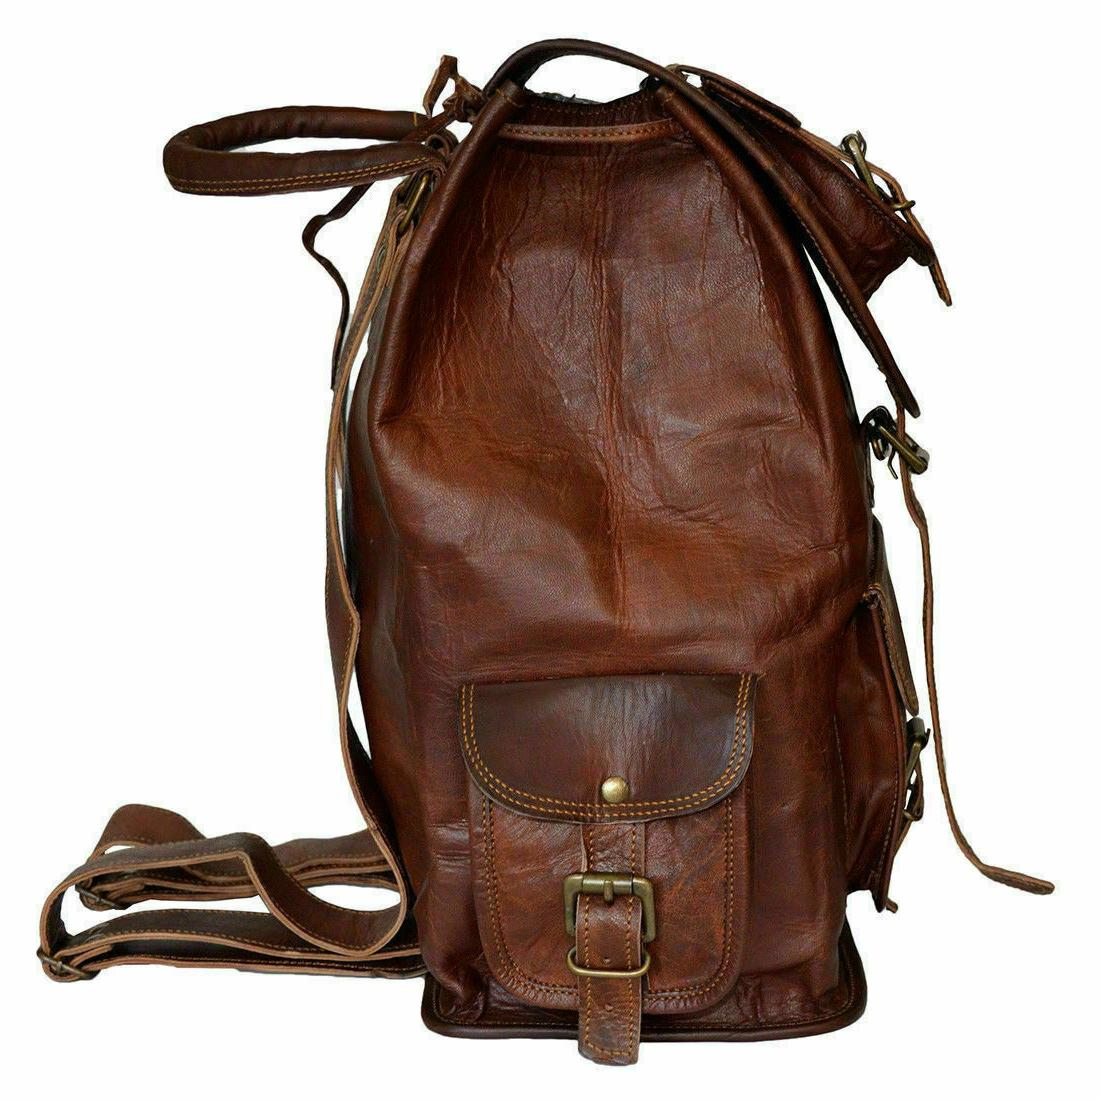 Vintage Backpack Messenger Bag Satchel